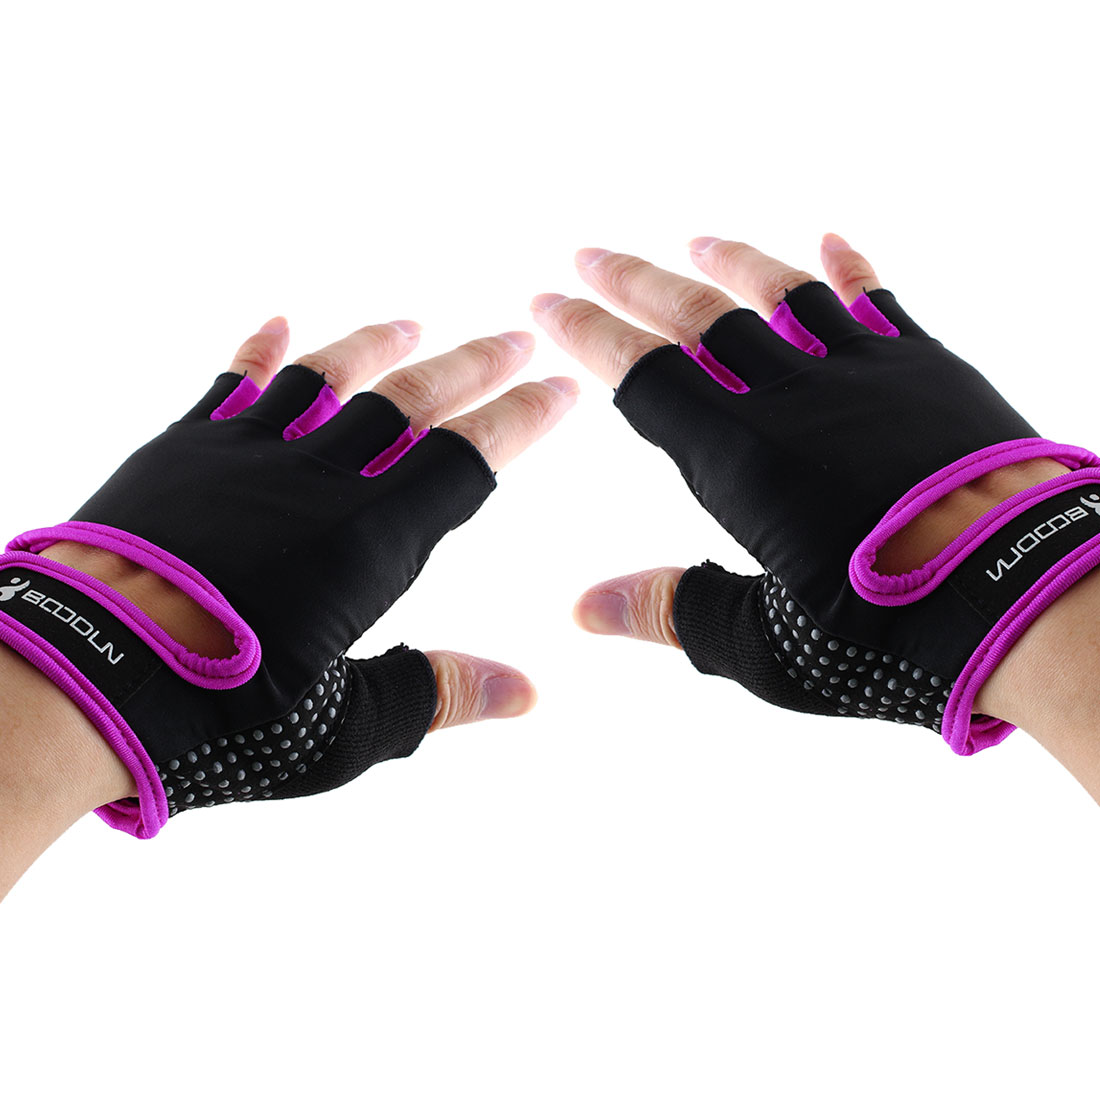 BOODUN Authorized Adult Unisex Spandex Adjustable Sports Training Workout Mittens Fitness Gloves Purple M Pair